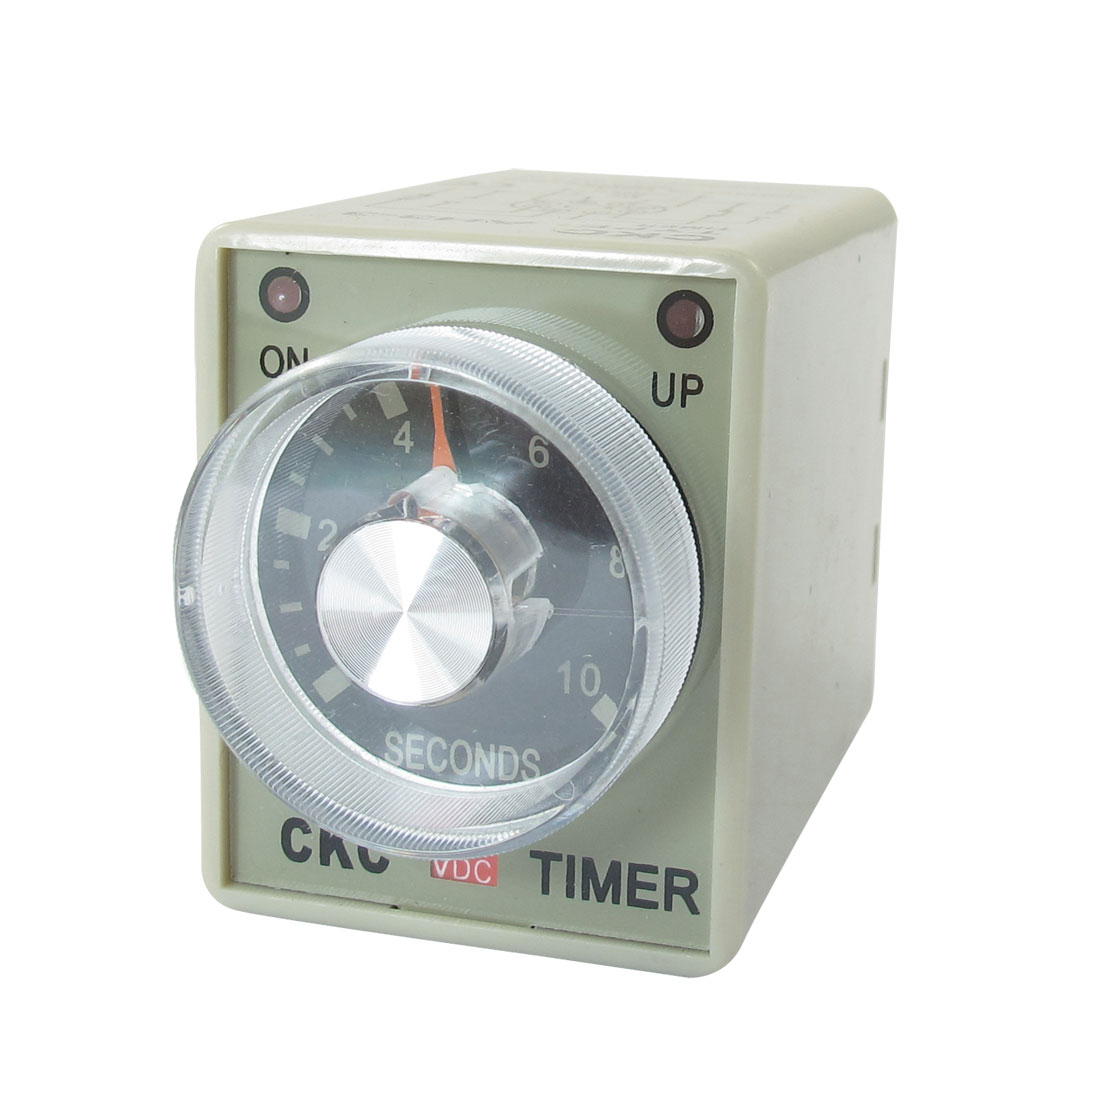 DC 12V 0-10 Seconds 10s Plastic Housing Delay Timer Time Relay 8 Pin AH3-3